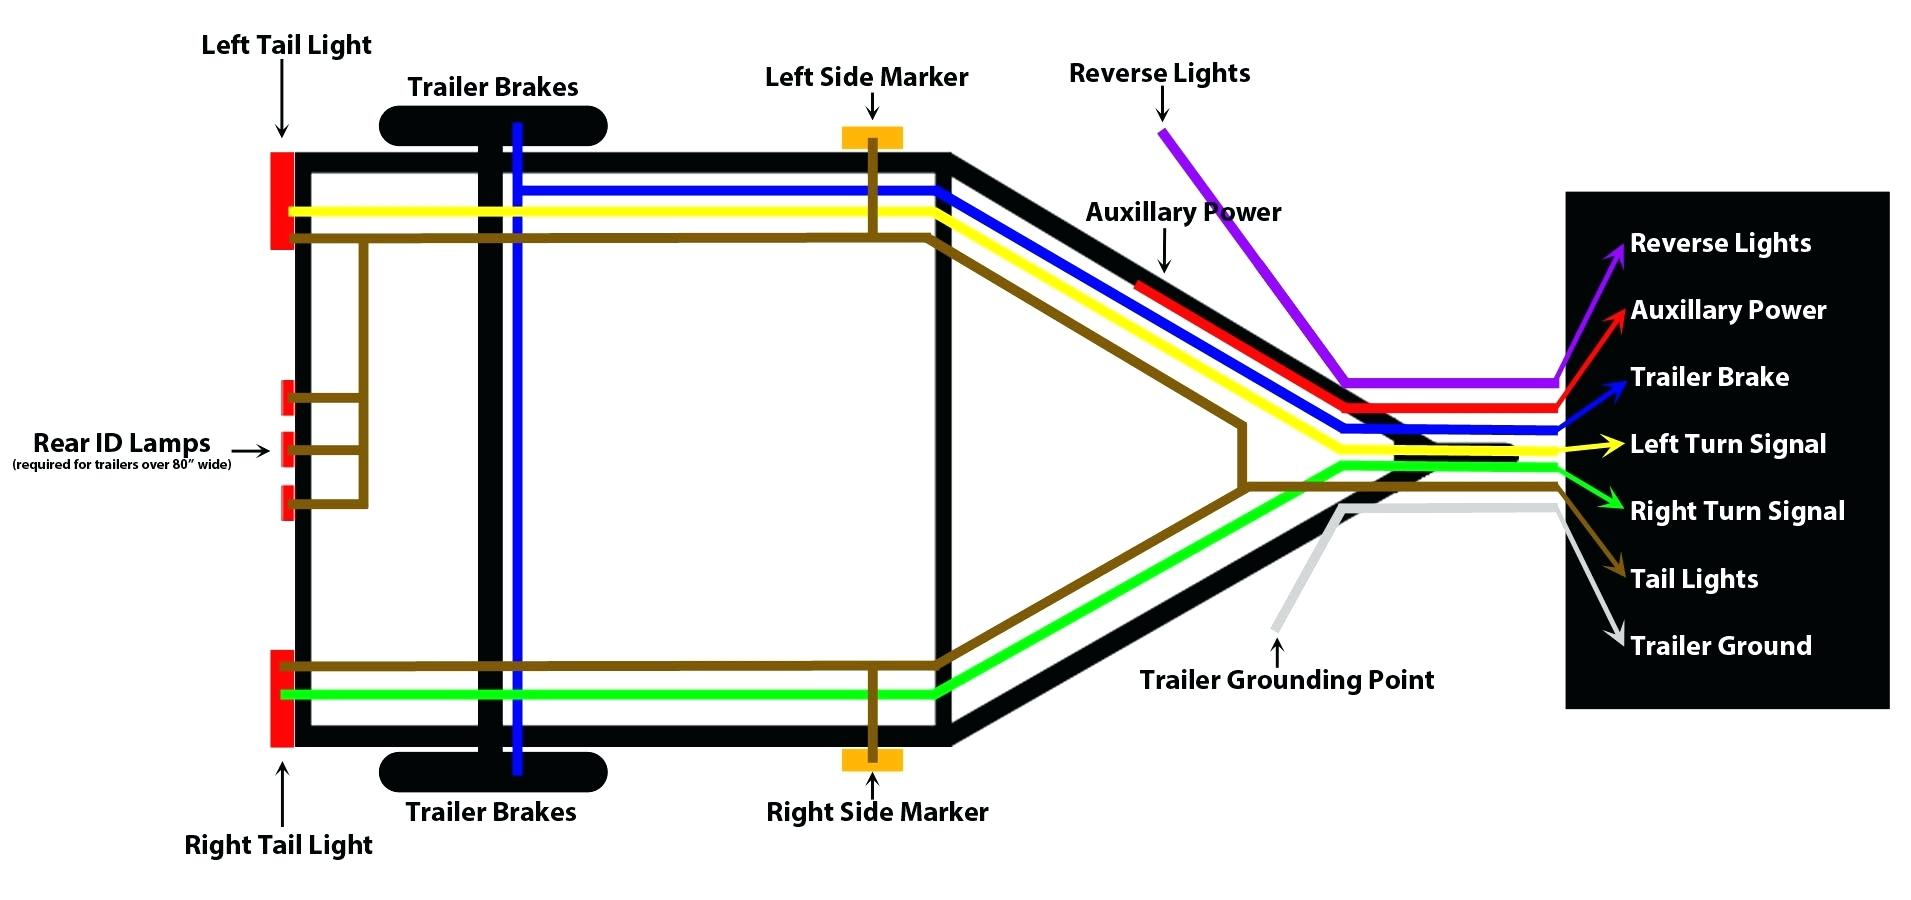 🏆 [DIAGRAM in Pictures Database] 7 Pole Wiring Diagram For A 2014  Chevrolet Pick Just Download or Read Chevrolet Pick - 104.248.39.191Complete Diagram Picture Database